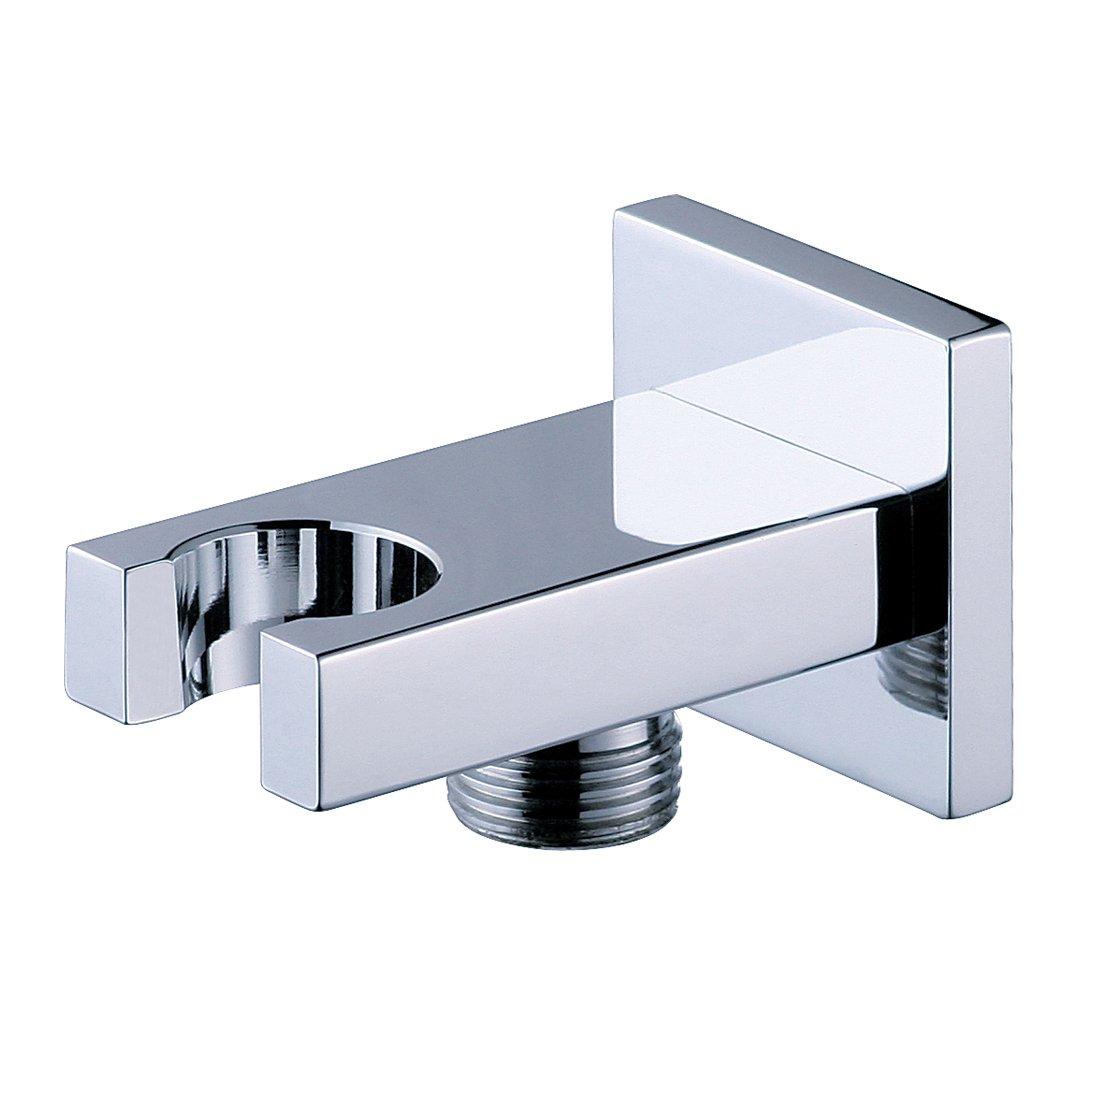 good SUMERAIN Solid Brass Shower Water Supply Elbow with Showerhead Bracket Wall Mounted Chrome Finish